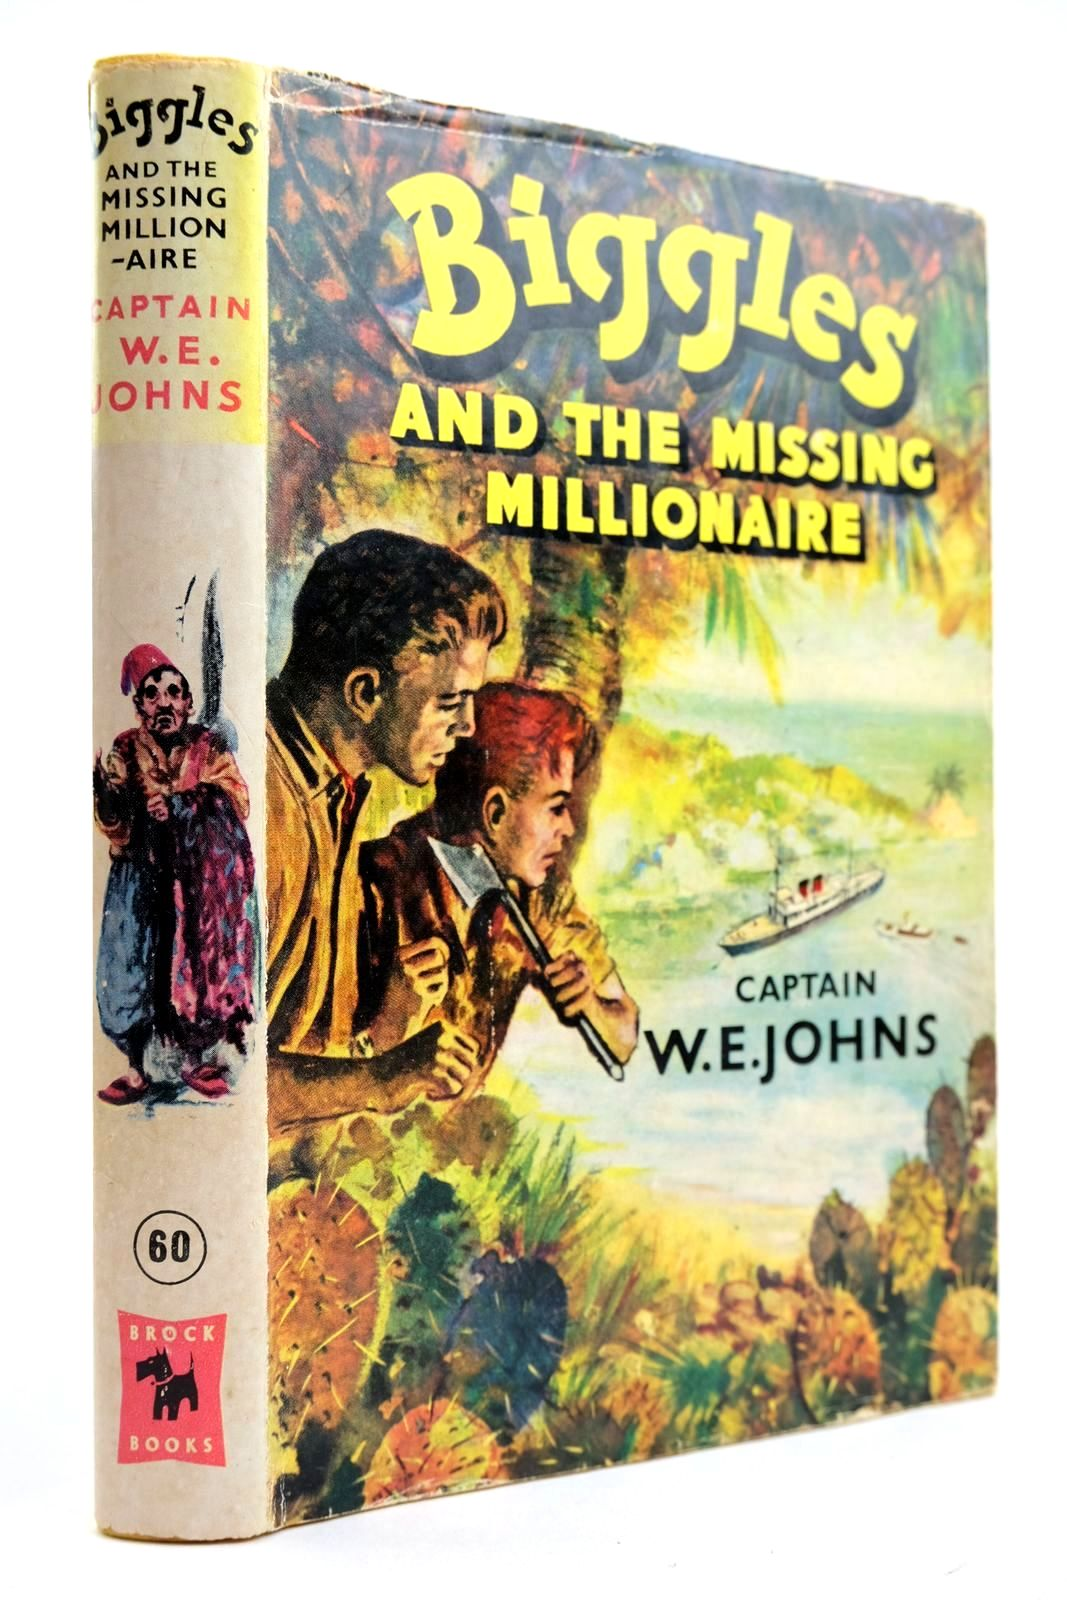 Photo of BIGGLES AND THE MISSING MILLIONAIRE written by Johns, W.E. illustrated by Stead, Leslie published by Brockhampton Press Ltd. (STOCK CODE: 2132492)  for sale by Stella & Rose's Books